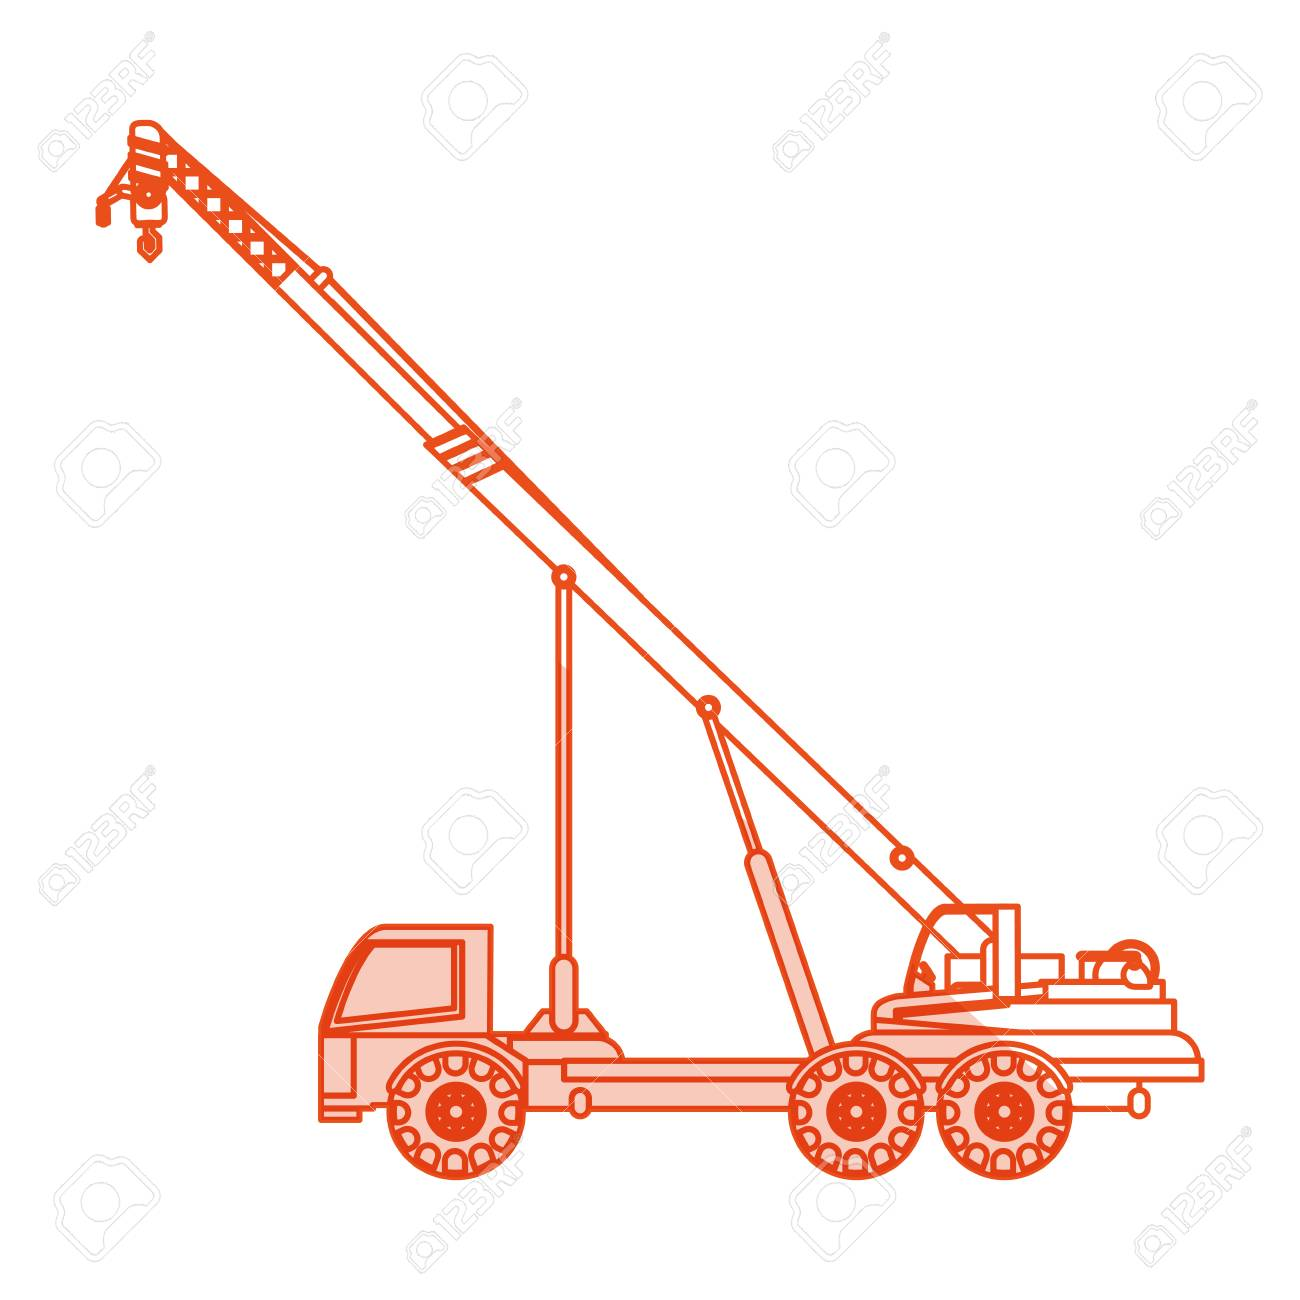 Orange Silhouette Ombrage Dessin Anime Construction Grue Camion